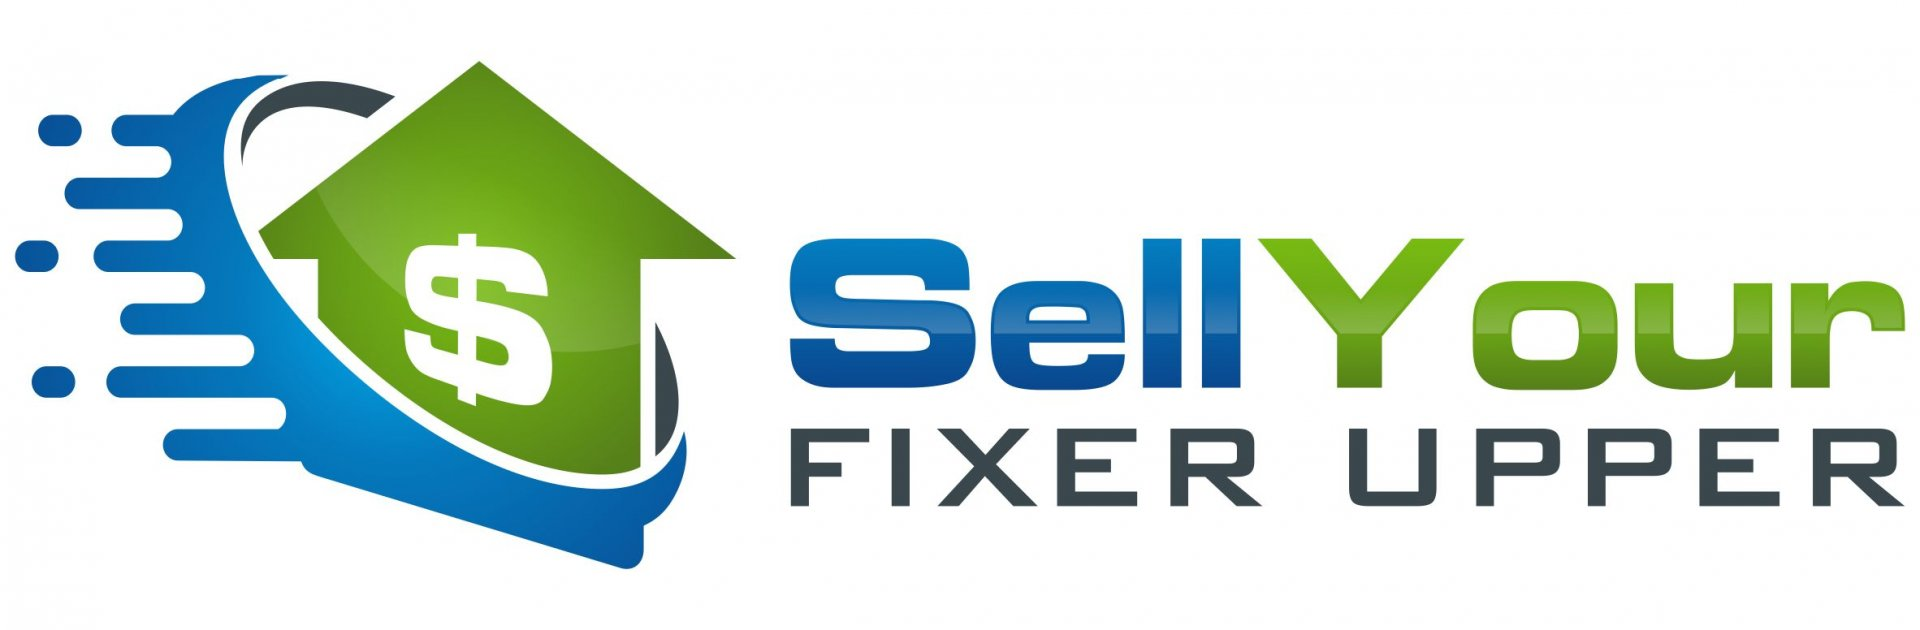 Sell Your Fixer Upper  logo